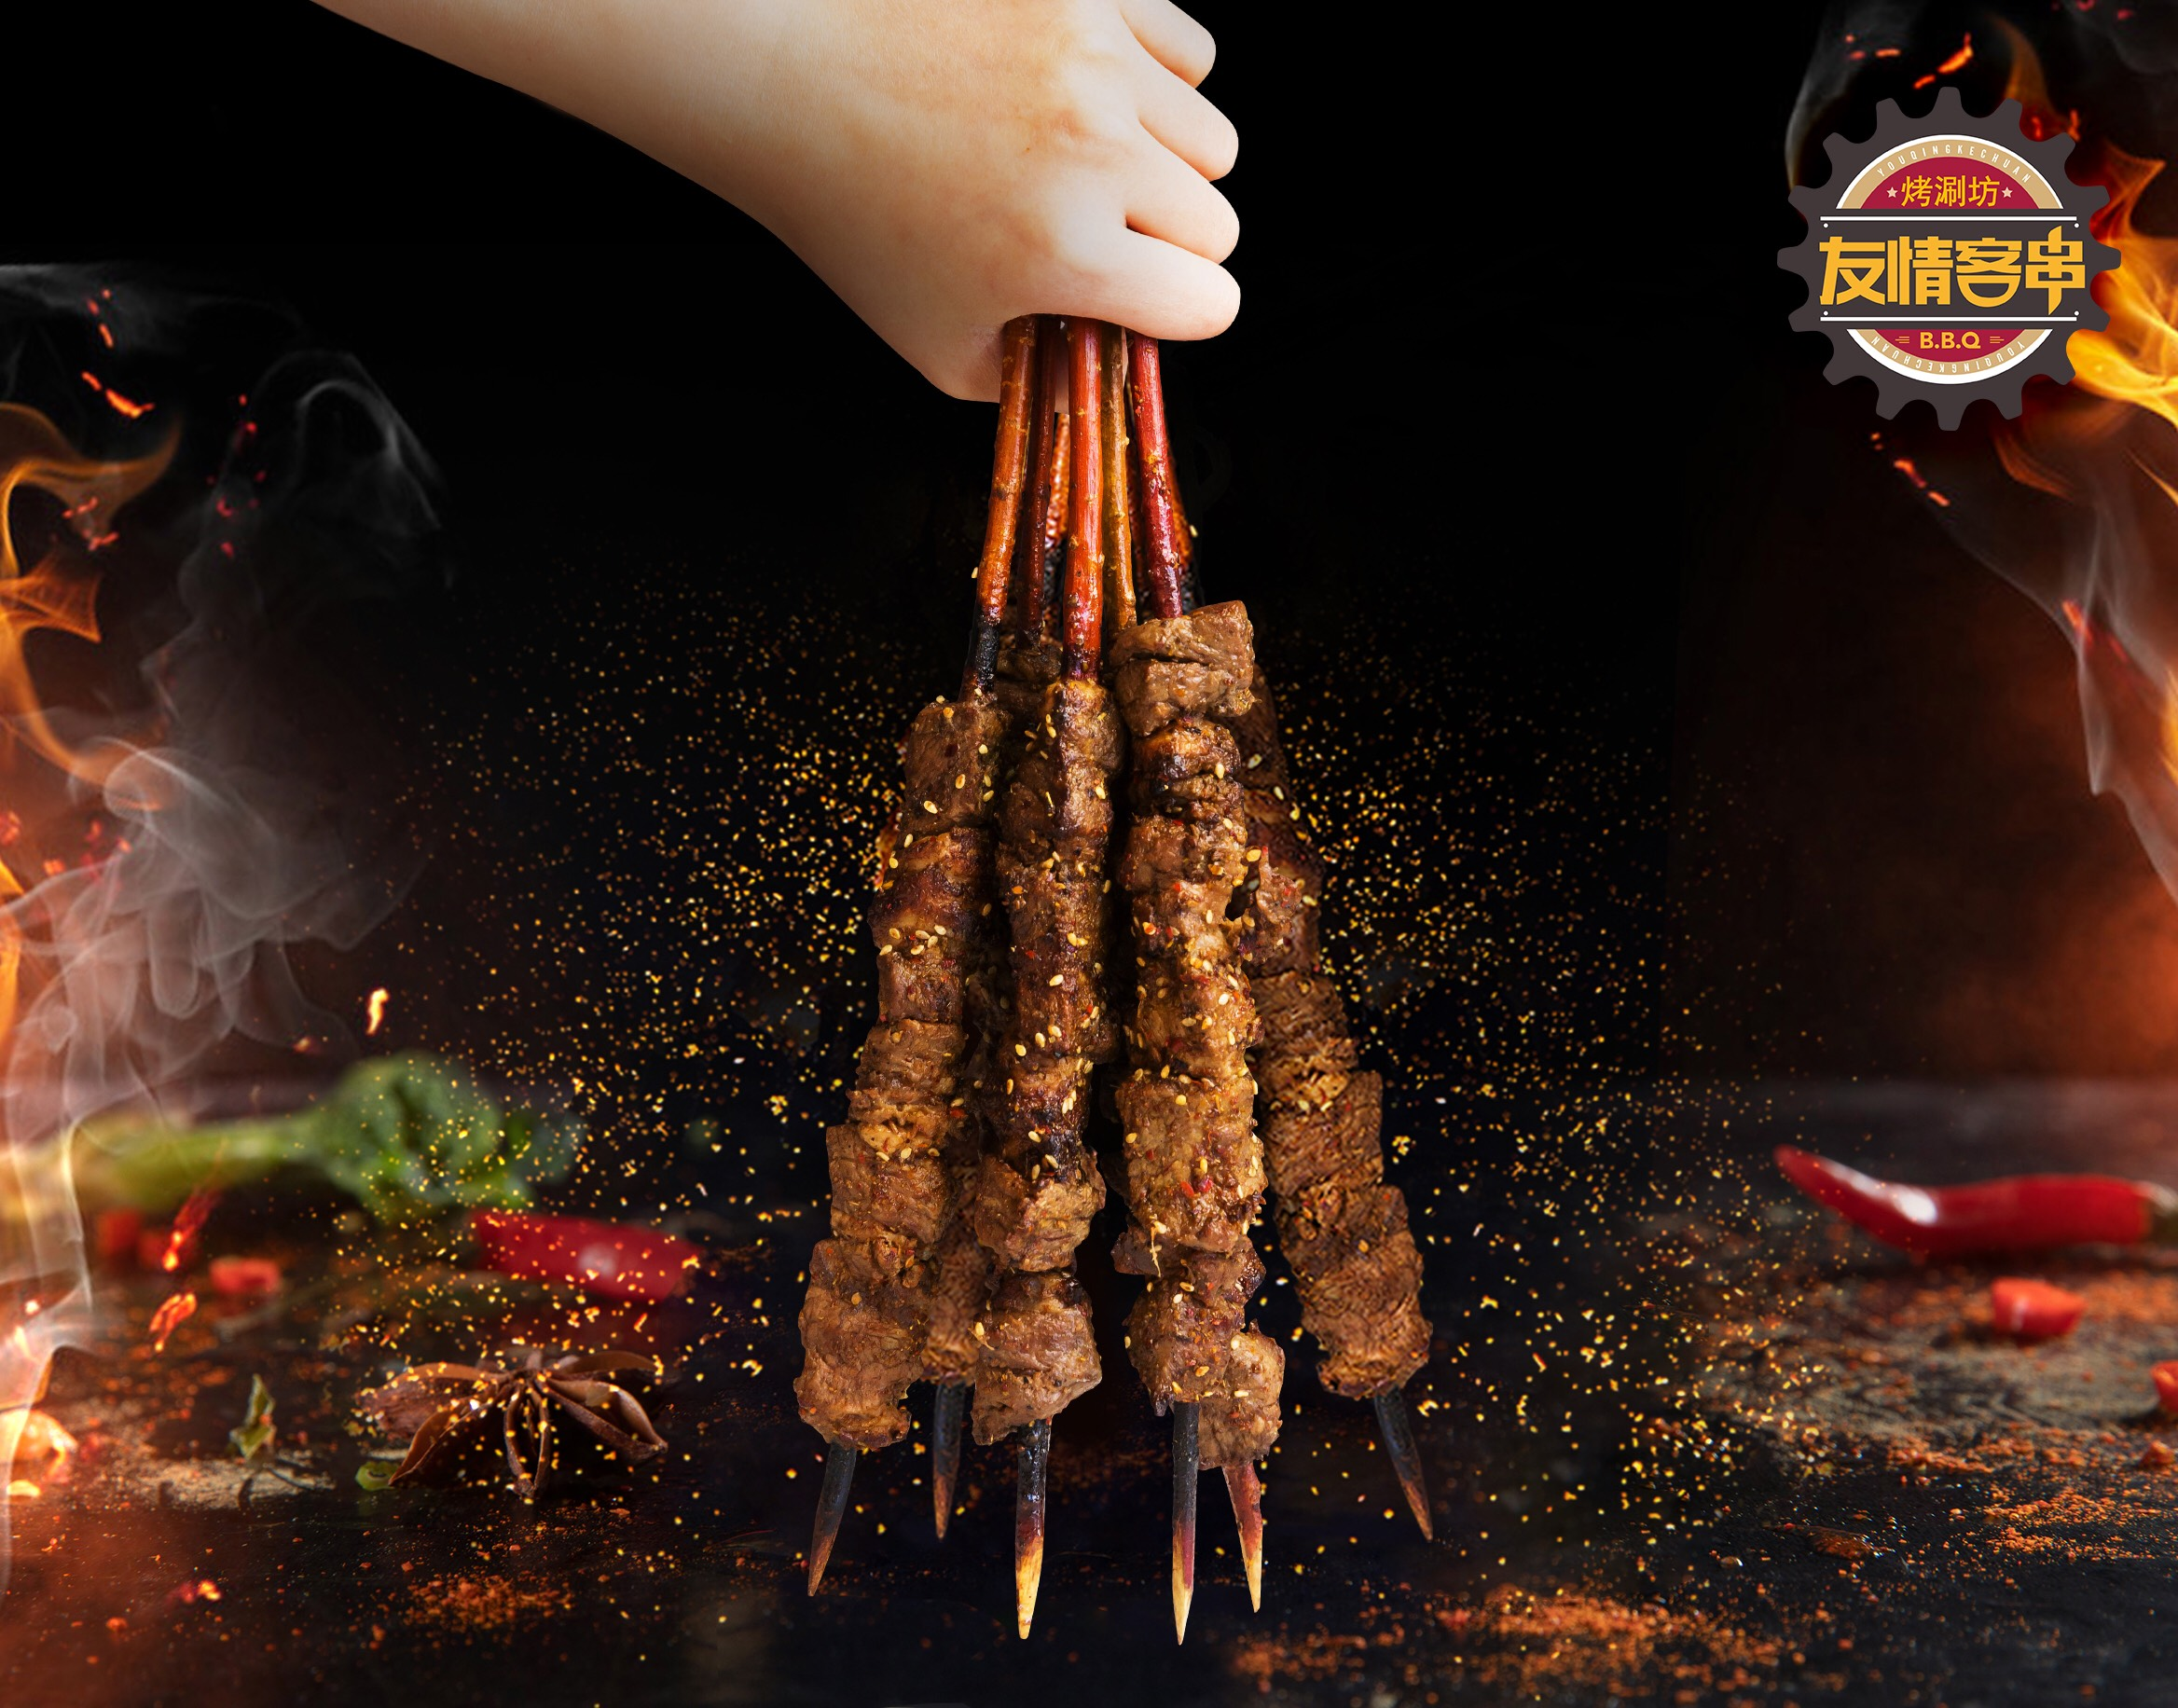 Six meaty skewers are held upside down, with peppers and spices coming off of them.